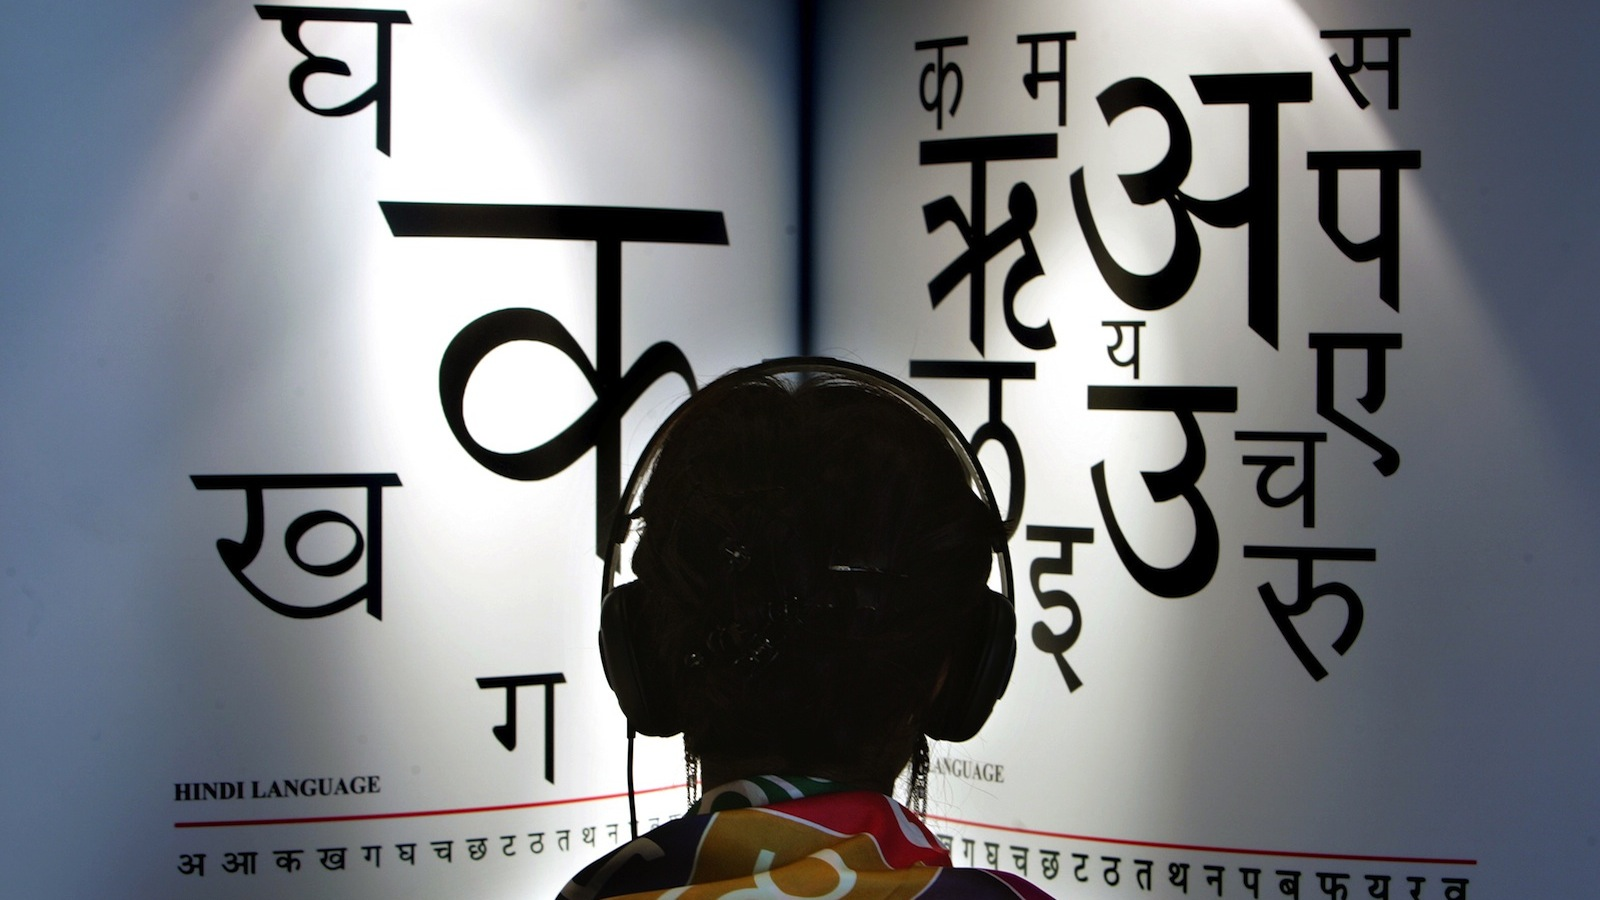 A woman listens to explanations on headphones about the Indian languages Hindi, left, and Marathi at the International Book Fair in Frankfurt, central Germany, Wednesday, Oct. 4, 2006. Indian literature, which already has a global following for its English writers, is reaching out to a broader audience for works in dozens of Indian languages at the Frankfurt Book Fair, which opened Tuesday. (AP Photo/Michael Probst)